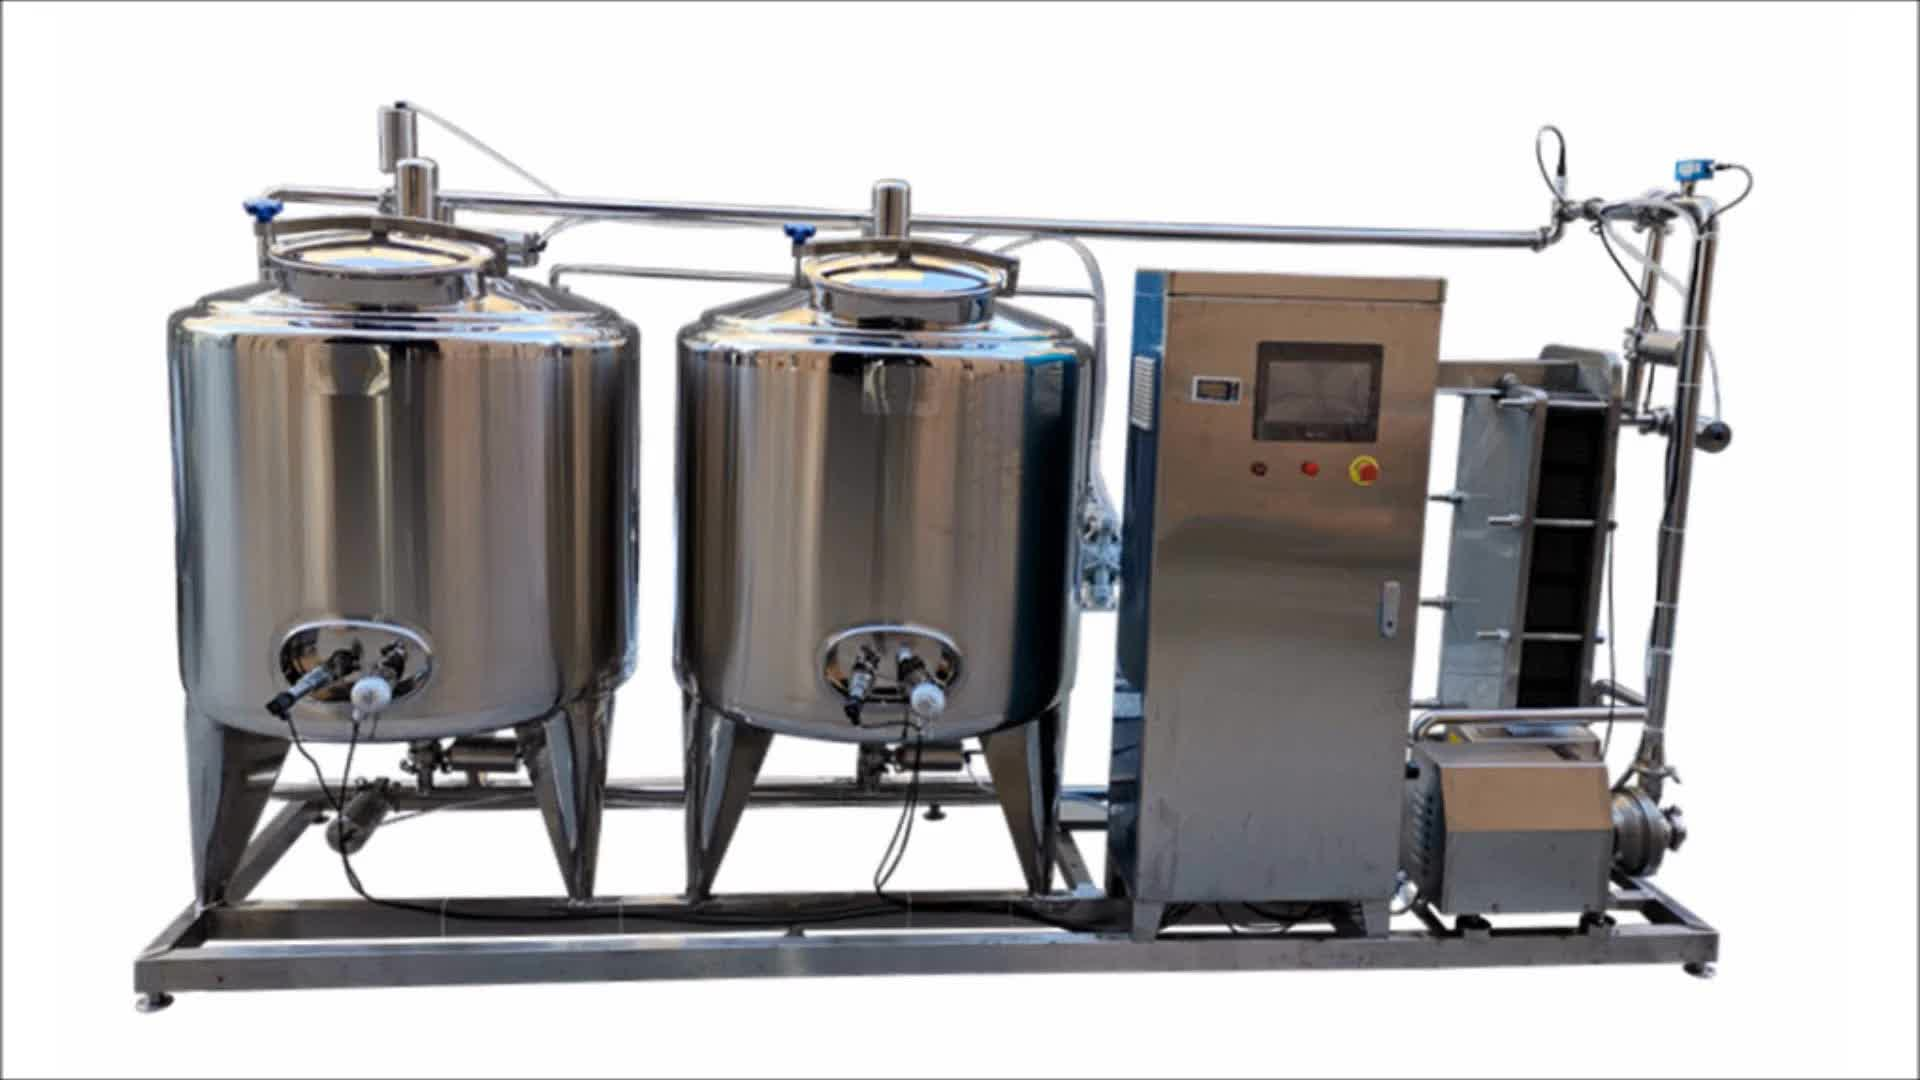 Dairy juice beverage sauce milk automatic cip clean in place system